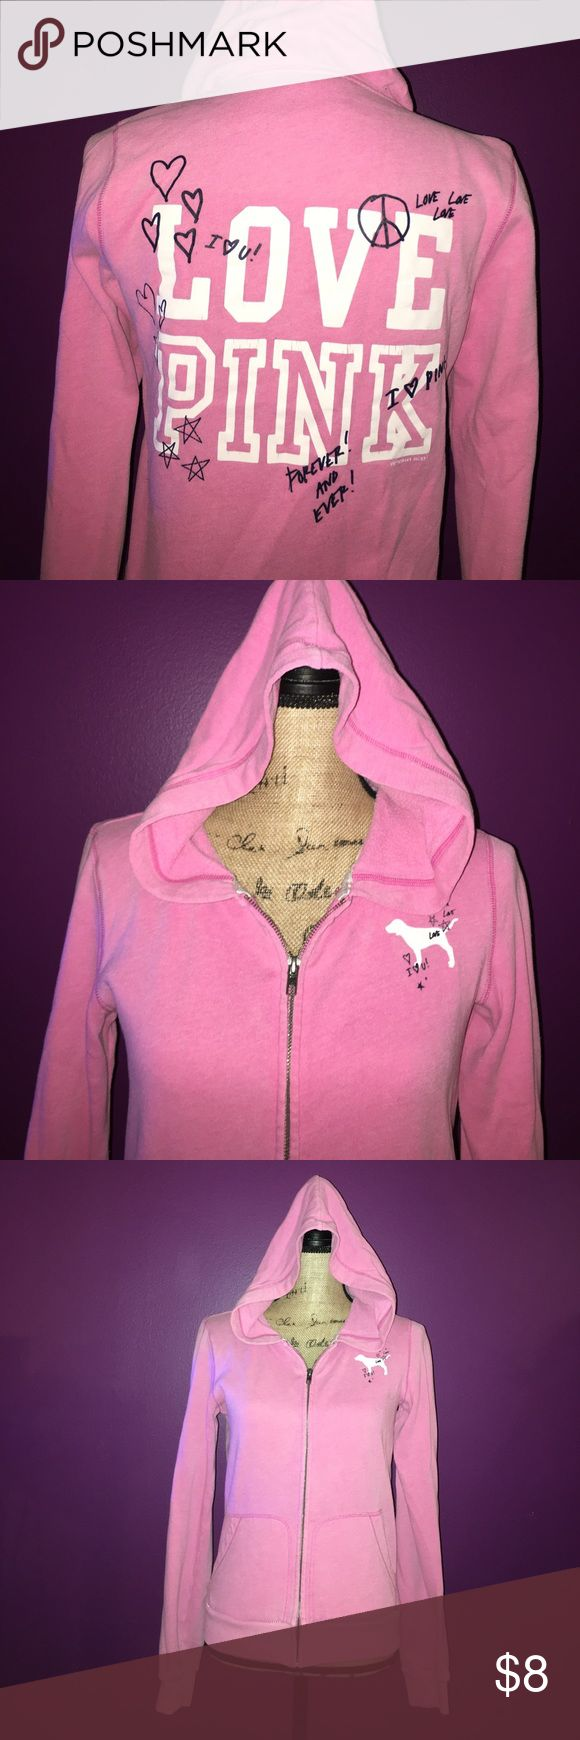 Victoria's Secret Pink zip up Hoodie Victoria's Secret Pink zip up Hoodie, size Small, has some stains- might be able to get them out **MAKE ME AN OFFER** PINK Victoria's Secret Tops Sweatshirts & Hoodies